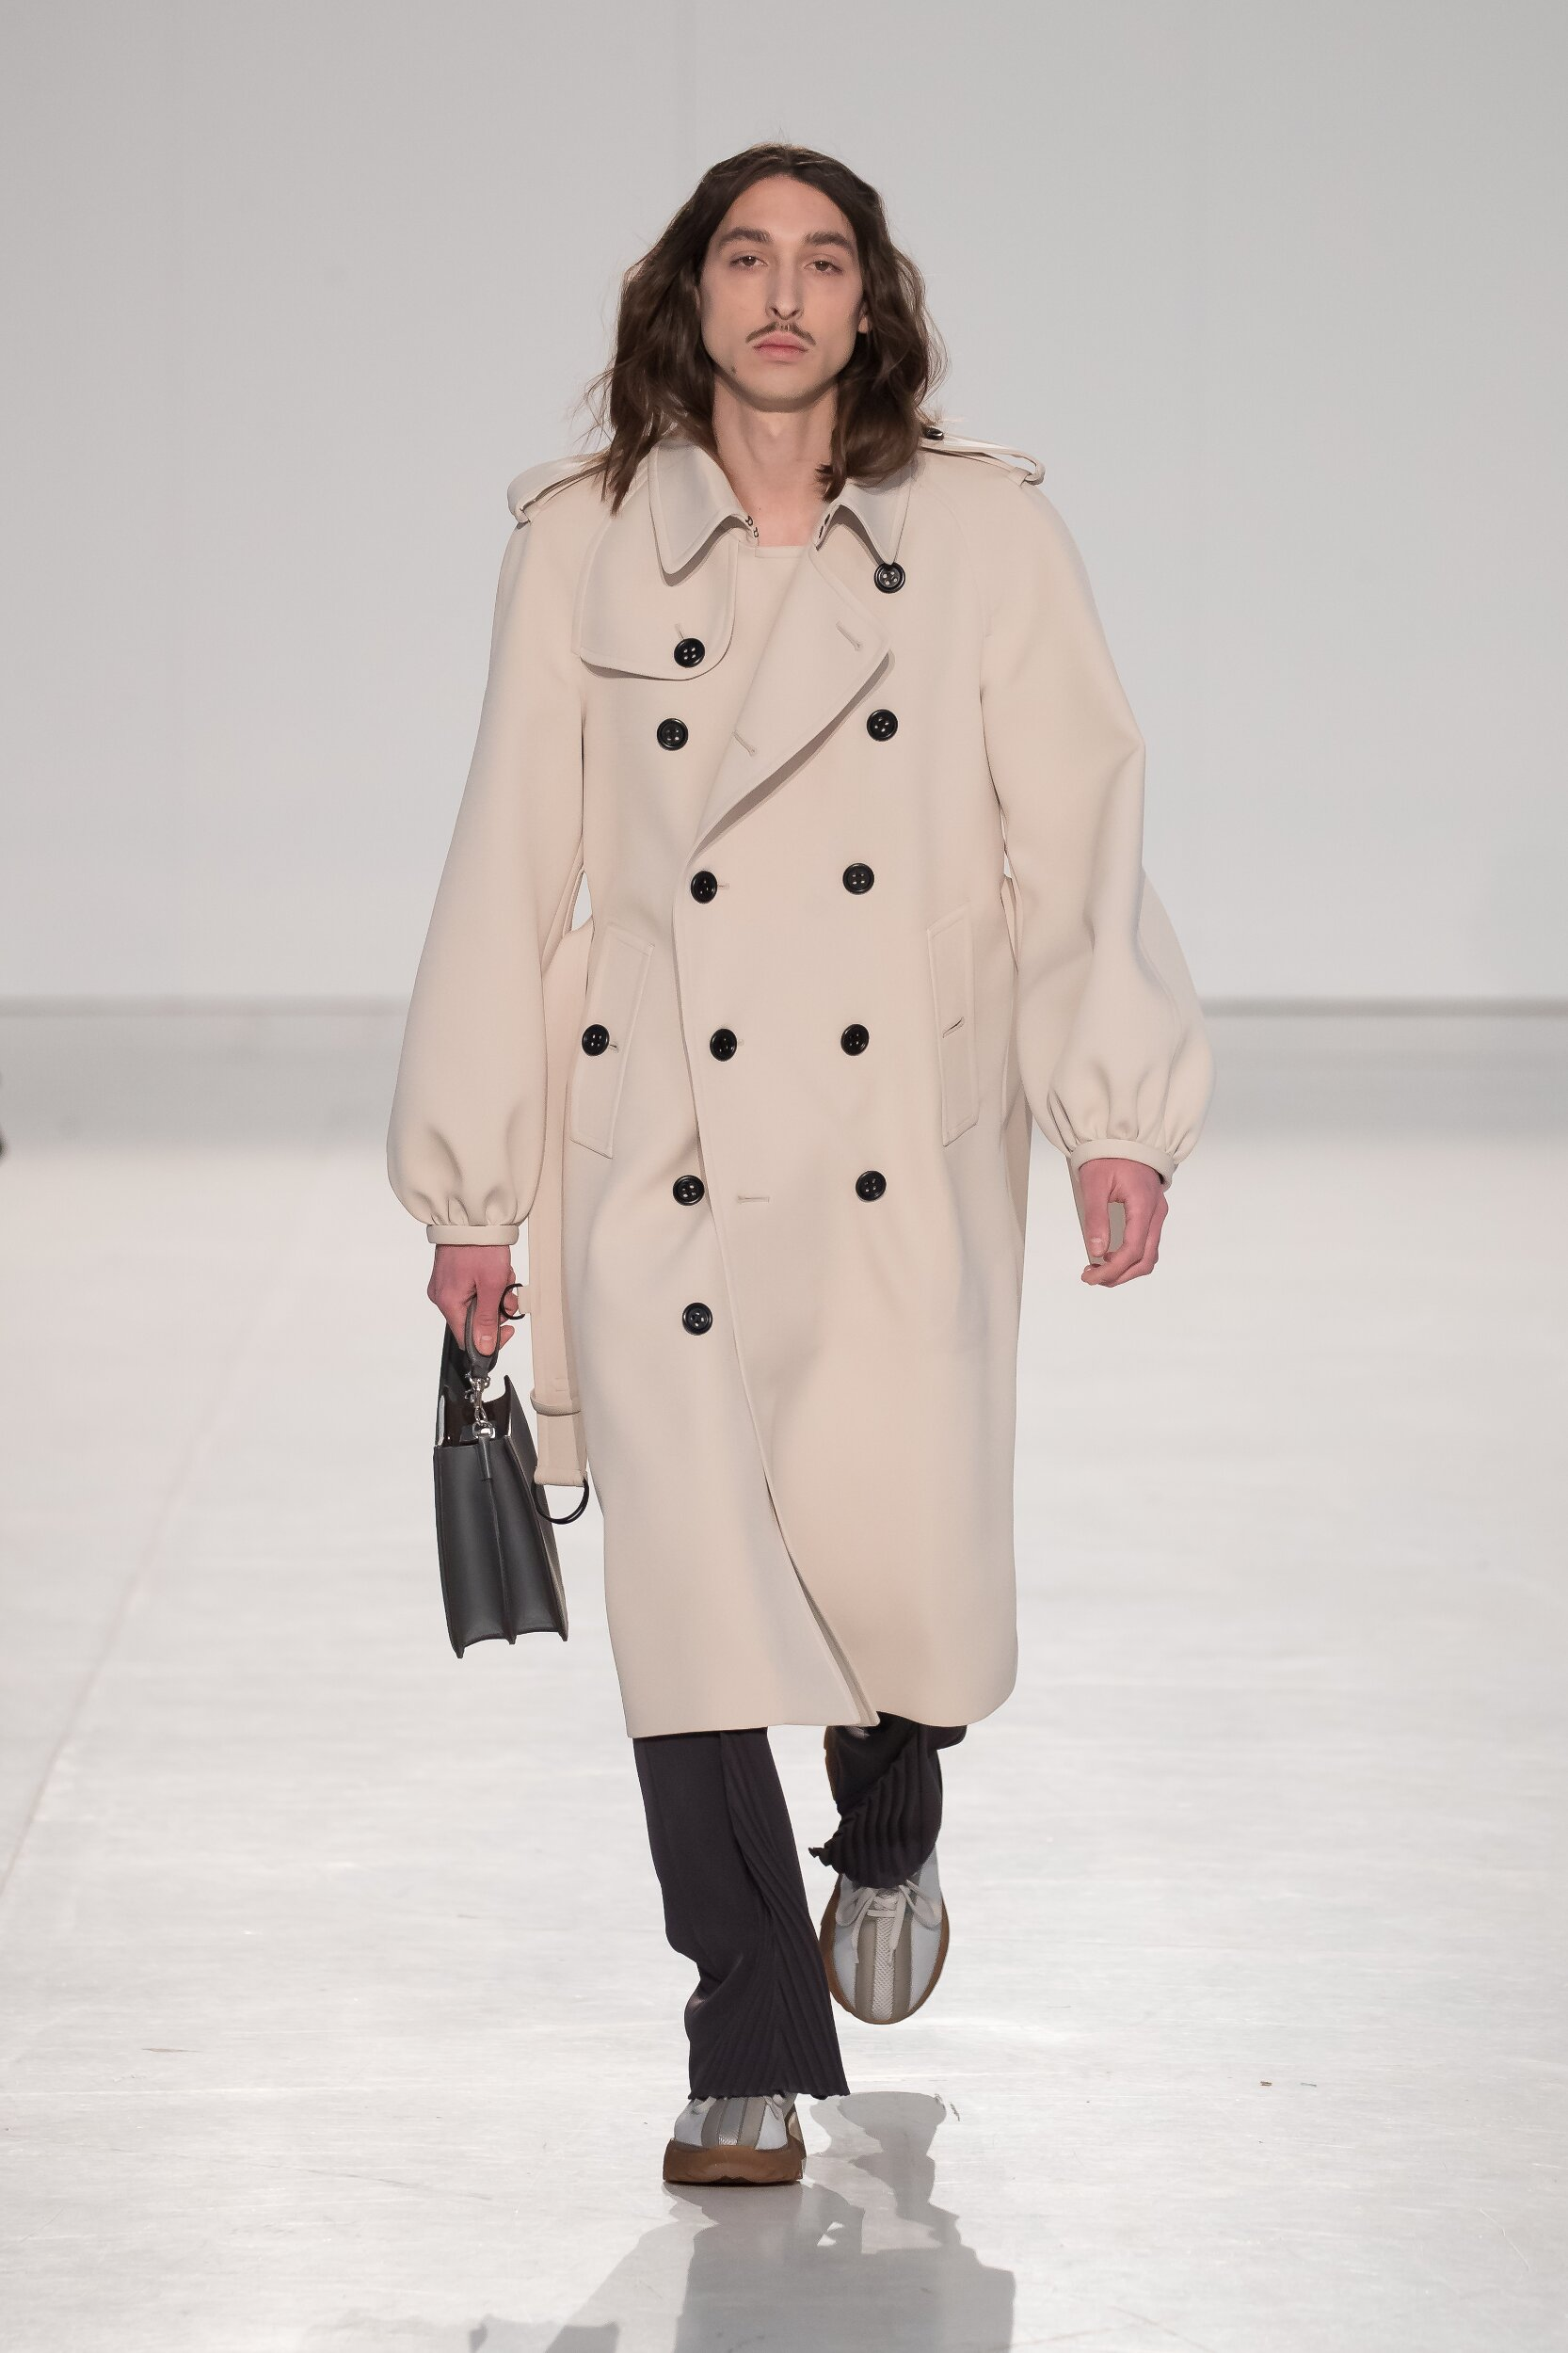 FW 2020-21 Marco De Vincenzo Fashion Show